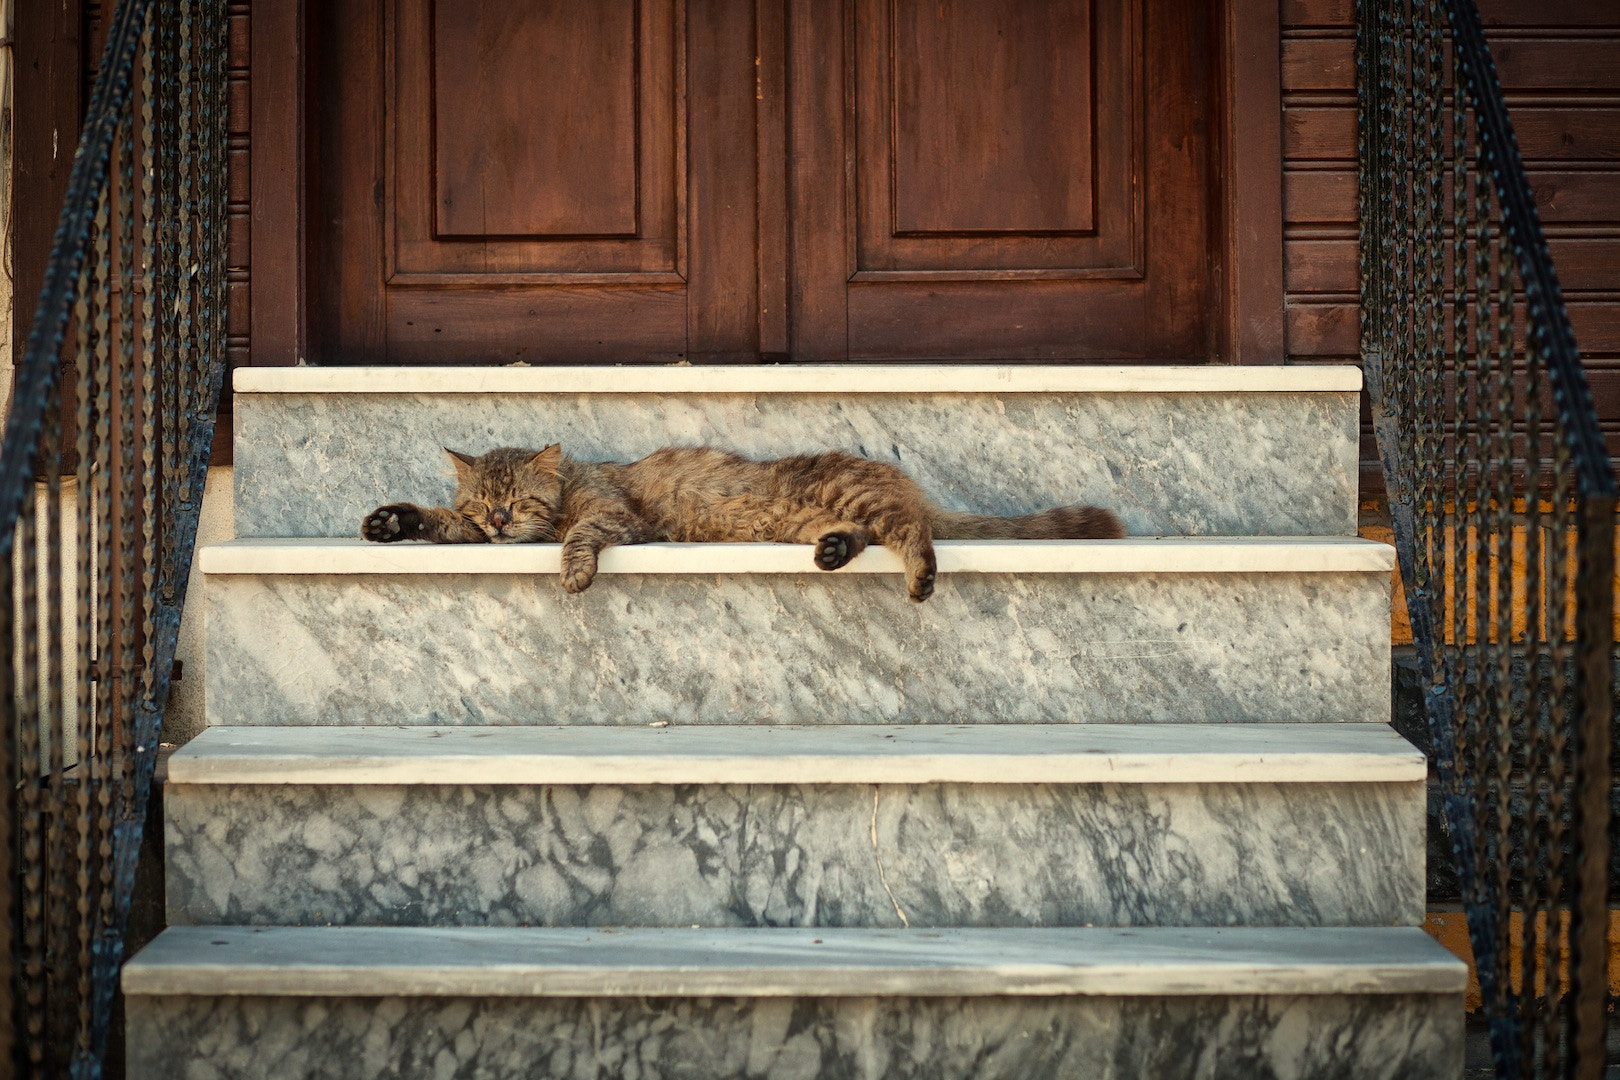 Photograph Lazyness by Romain Winkel on 500px